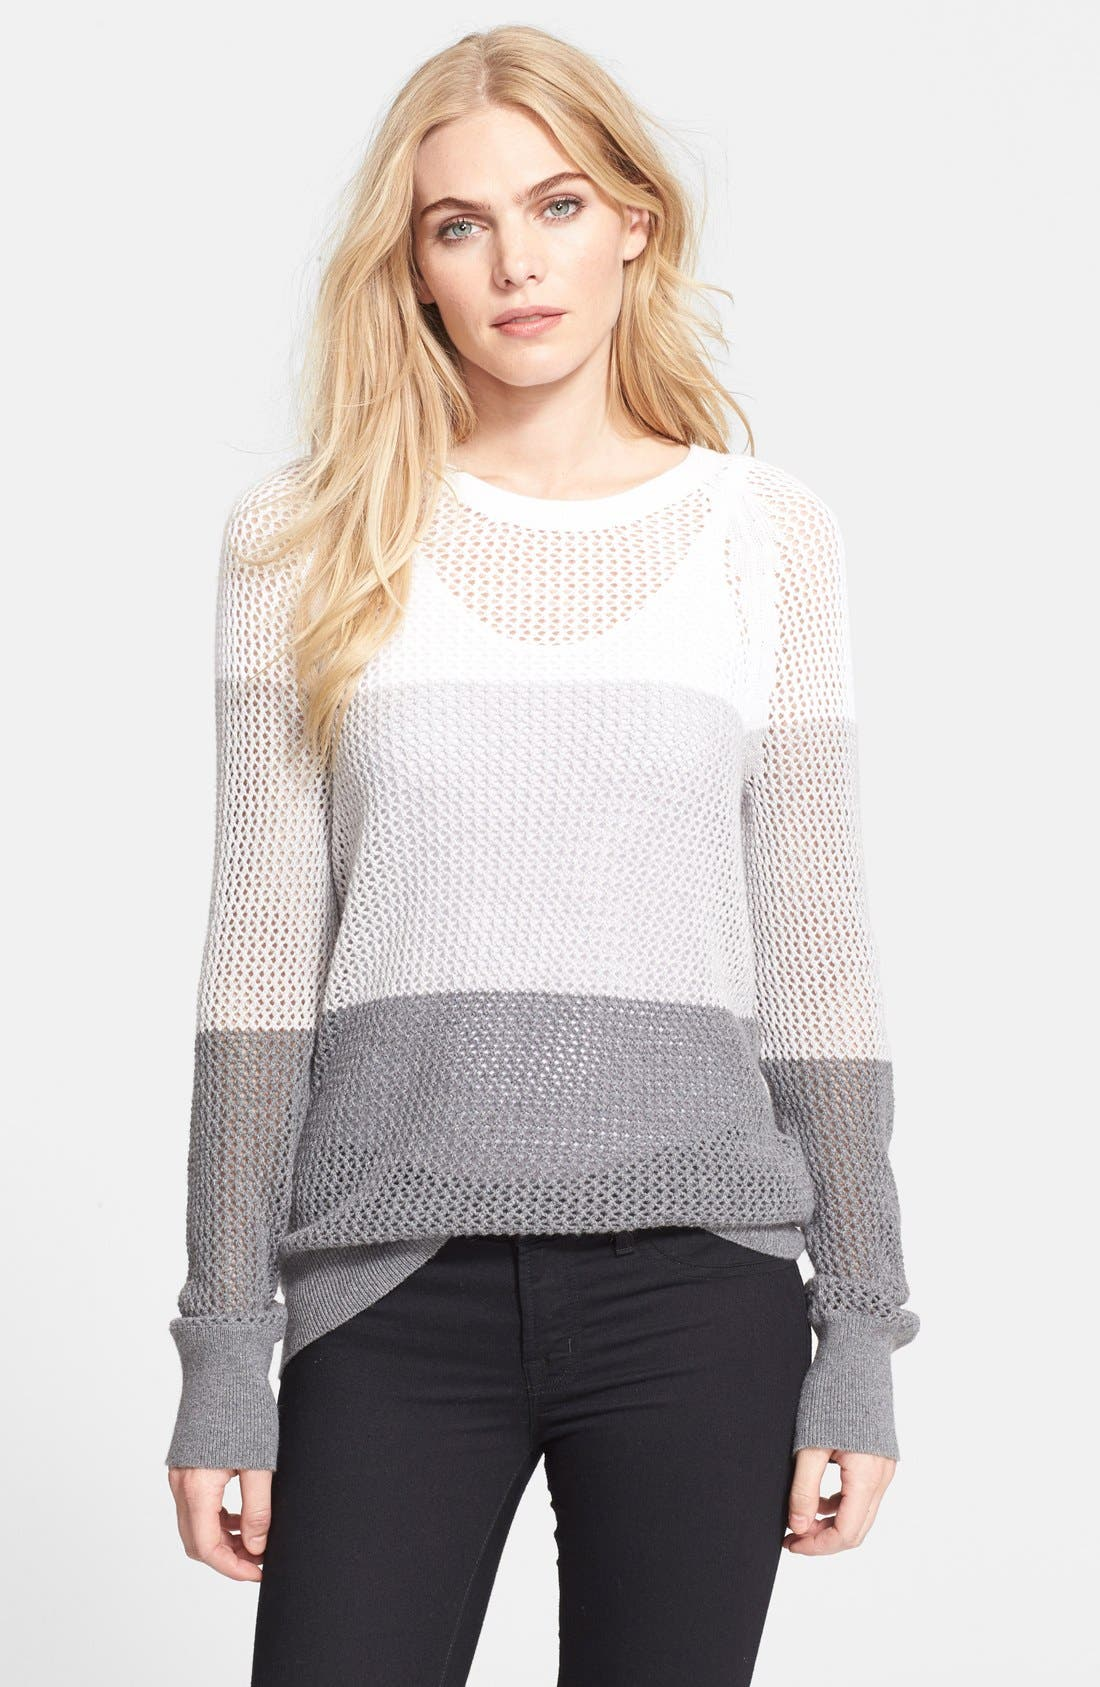 Alternate Image 1 Selected - Equipment 'Sloane' Colorblock Cotton & Cashmere Mesh Sweater